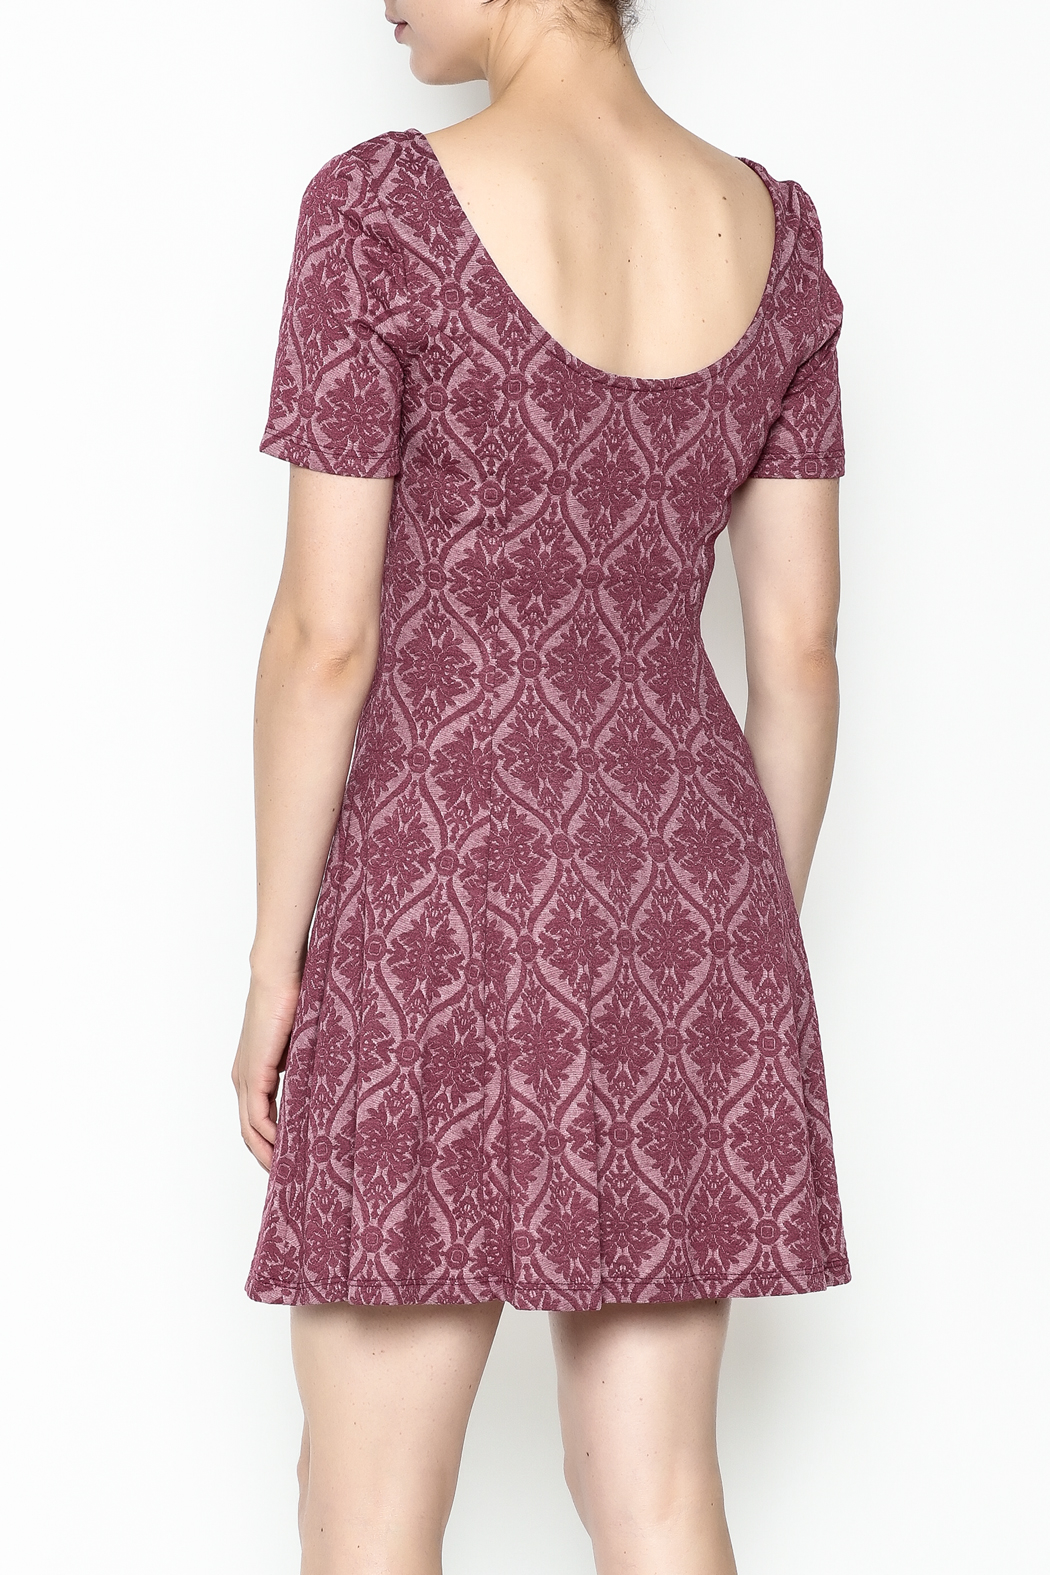 Everly Patterned Deep Pink Dress - Back Cropped Image